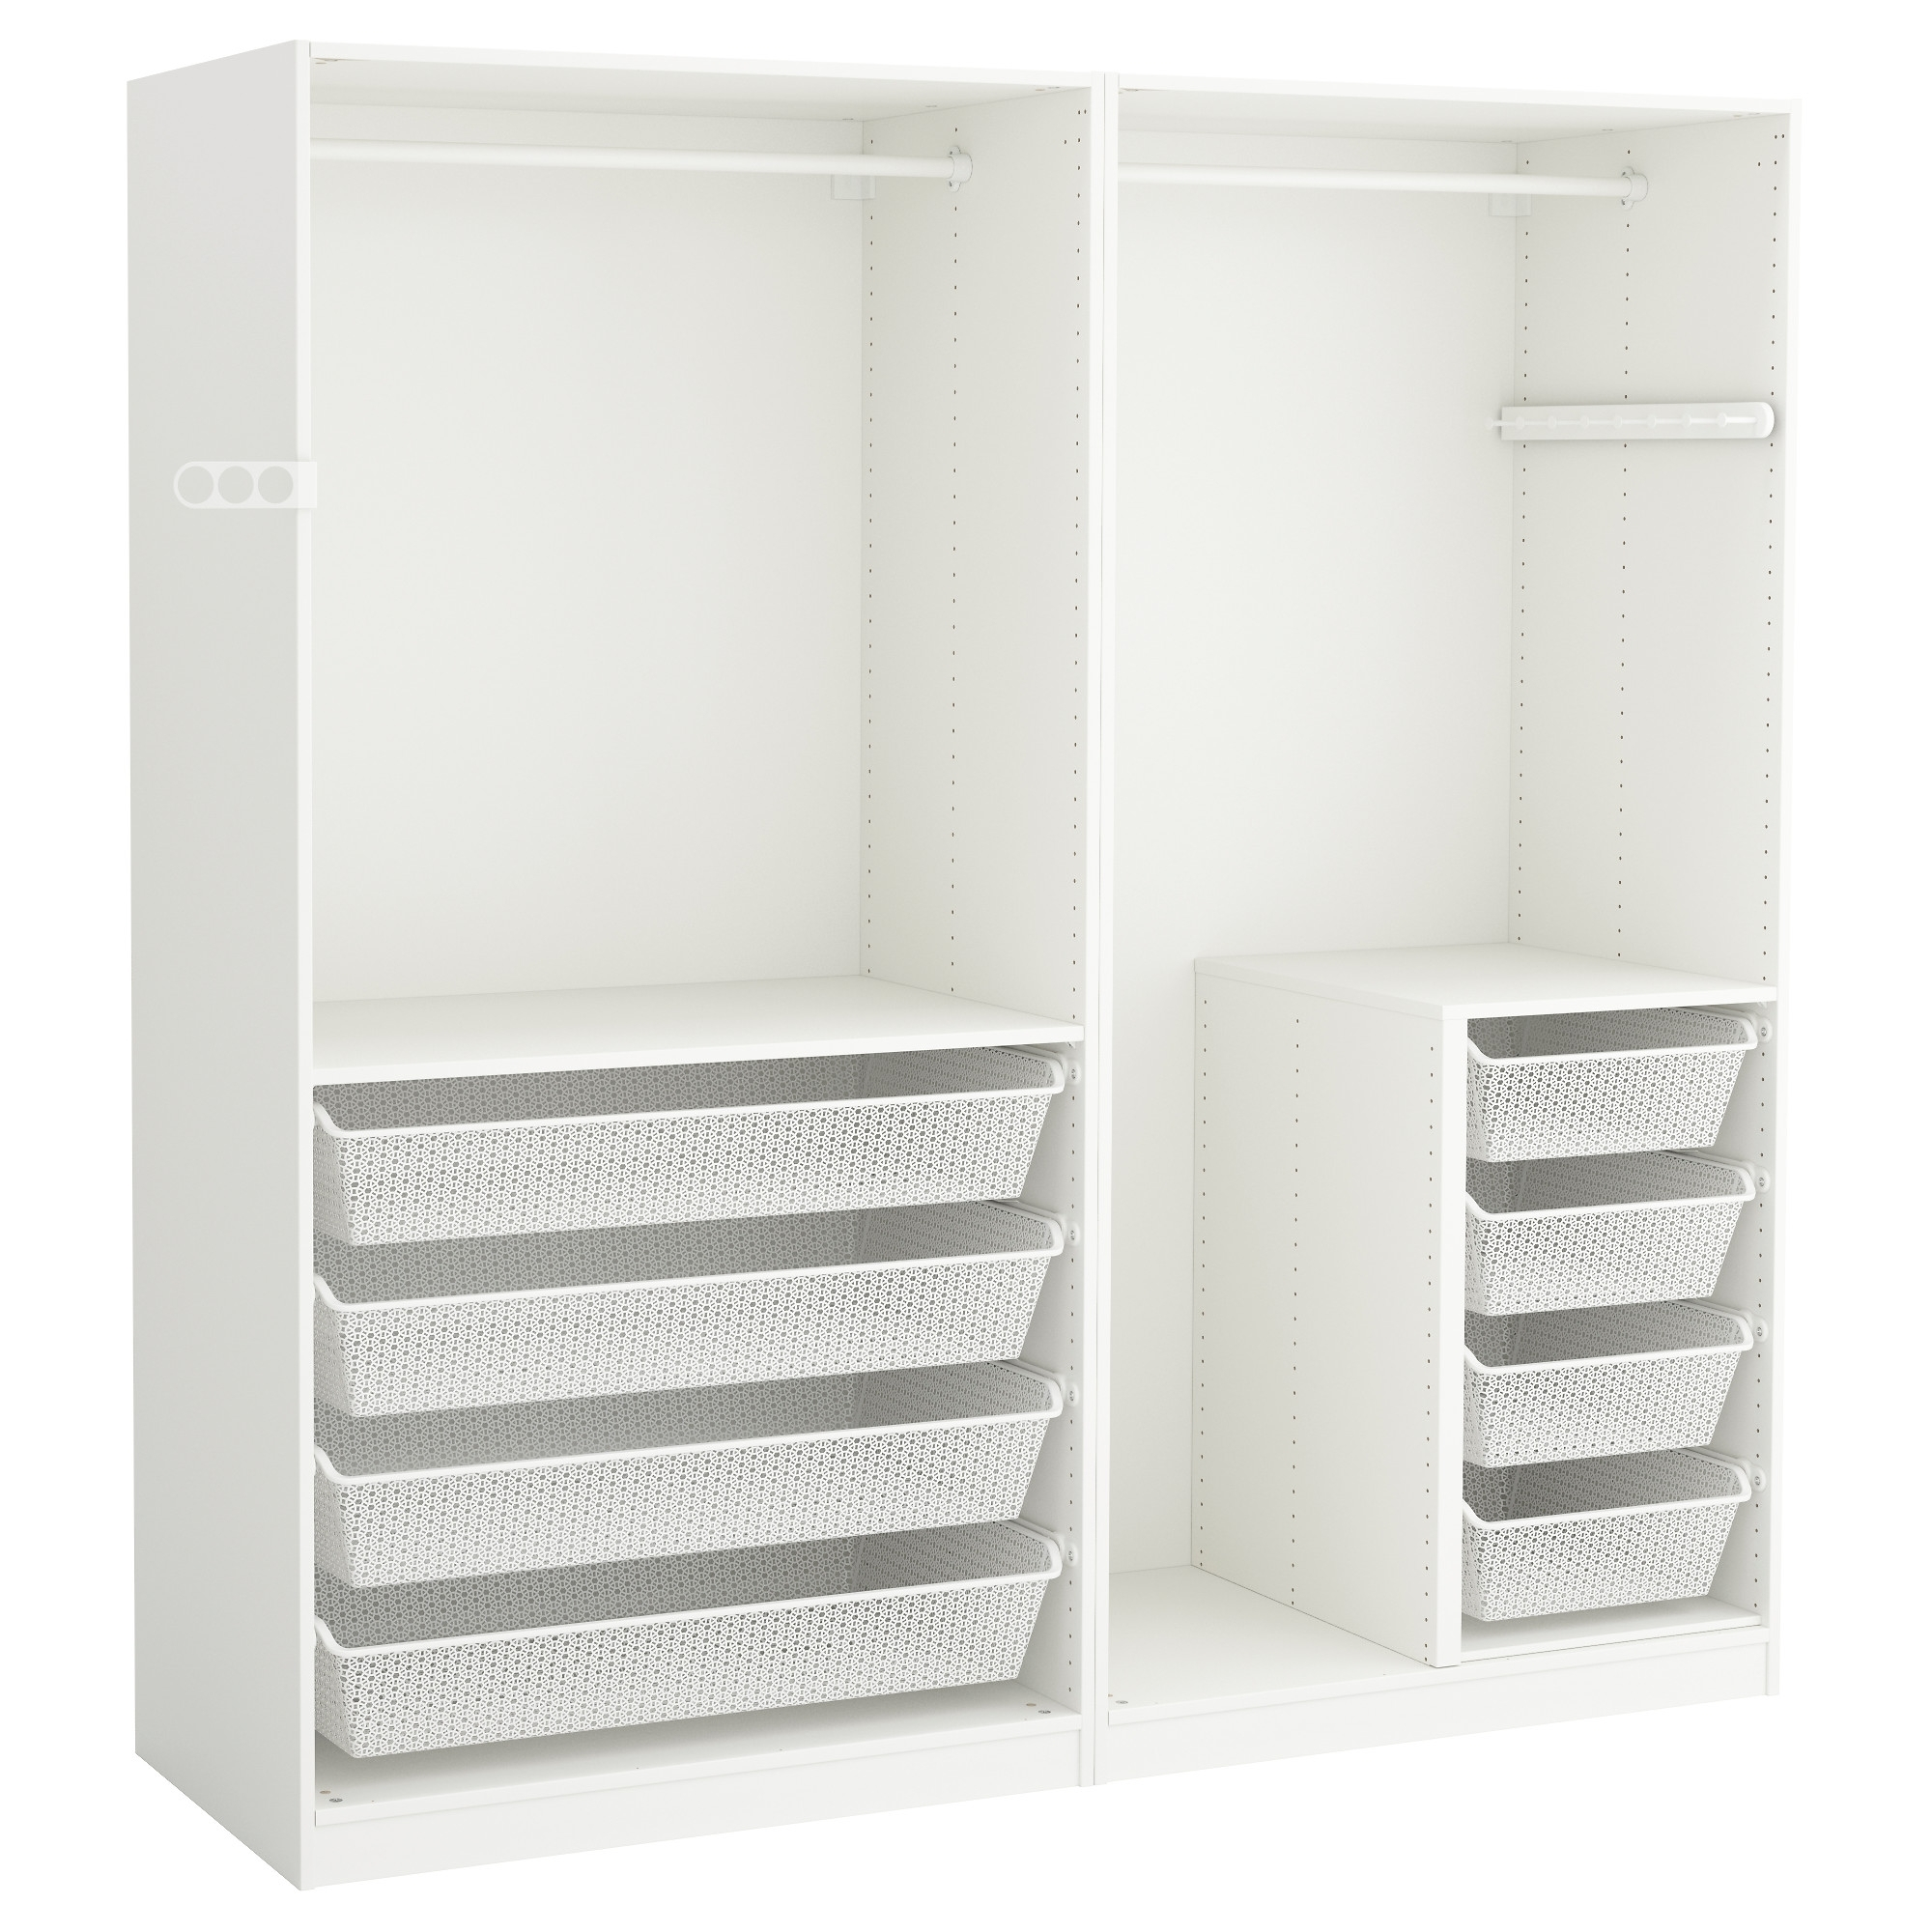 Pax Wardrobe White 200X58X201 Cm – Ikea Pertaining To Fashionable Wardrobes Drawers And Shelves Ikea (View 11 of 15)